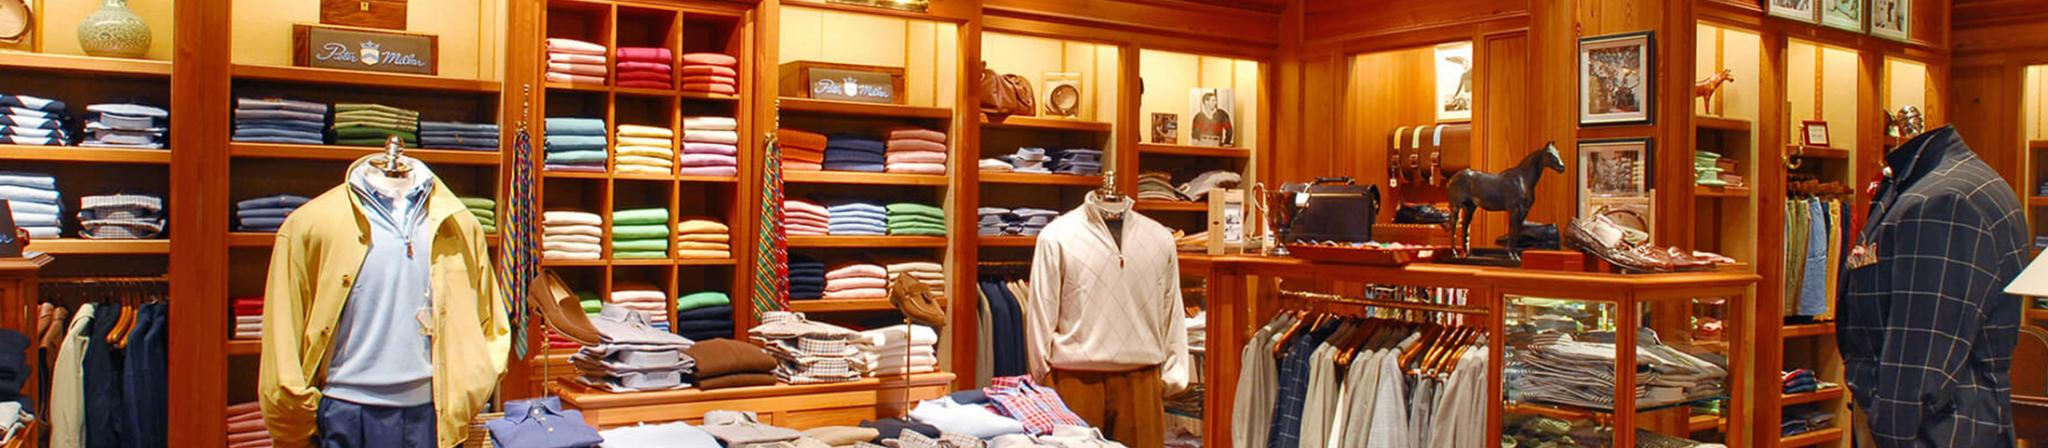 Mannequins dressed up in men's golf attire in the men's clothing section